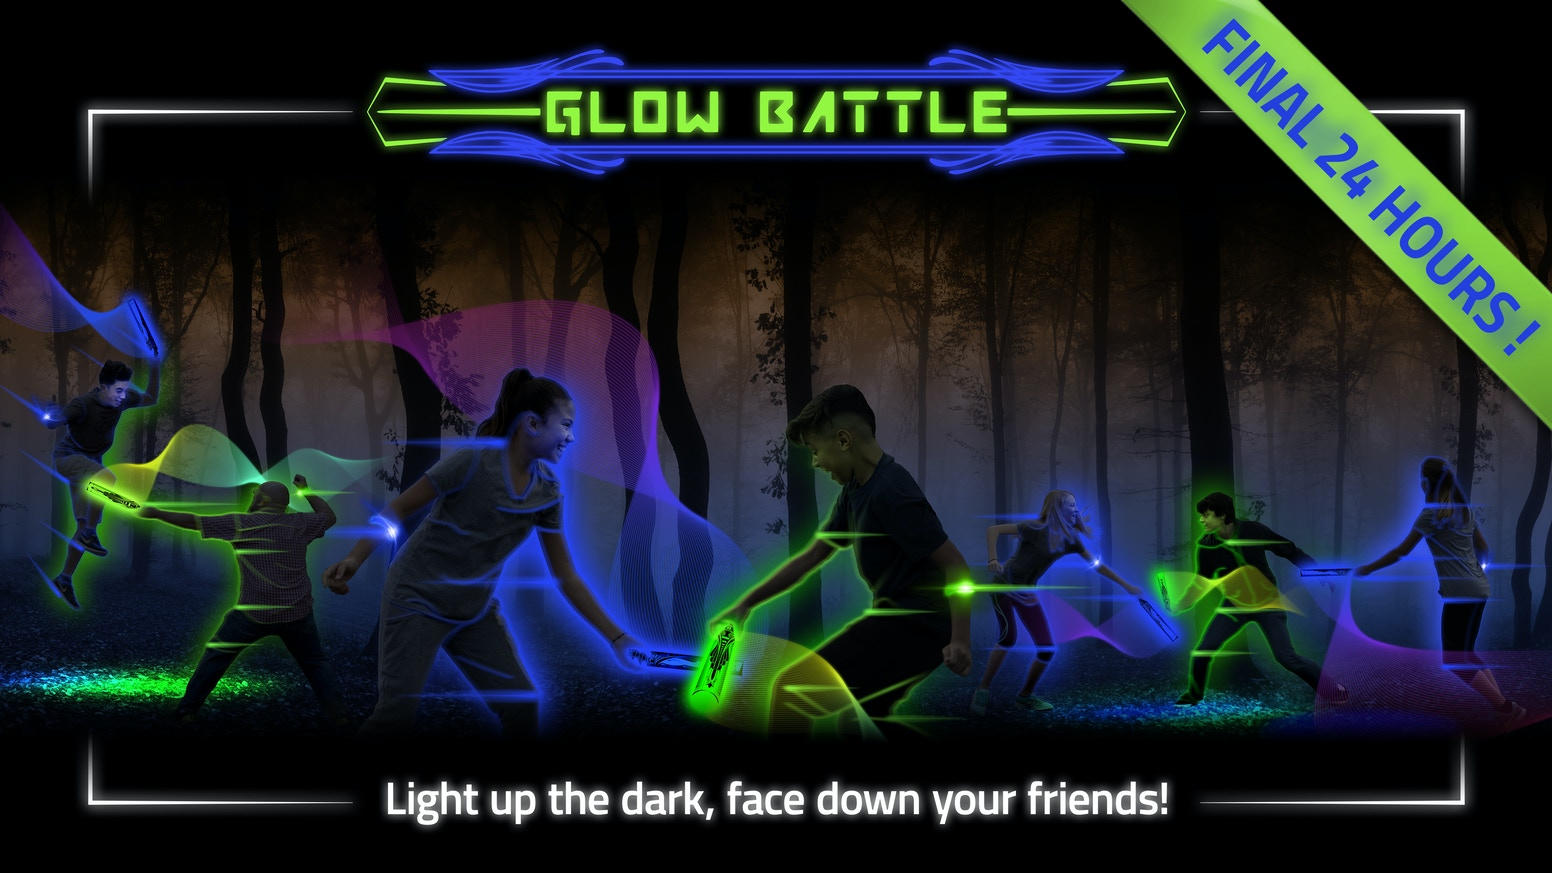 Light up the dark and face down your friends in the glowing game that leaves smartphones and video games in the dust!